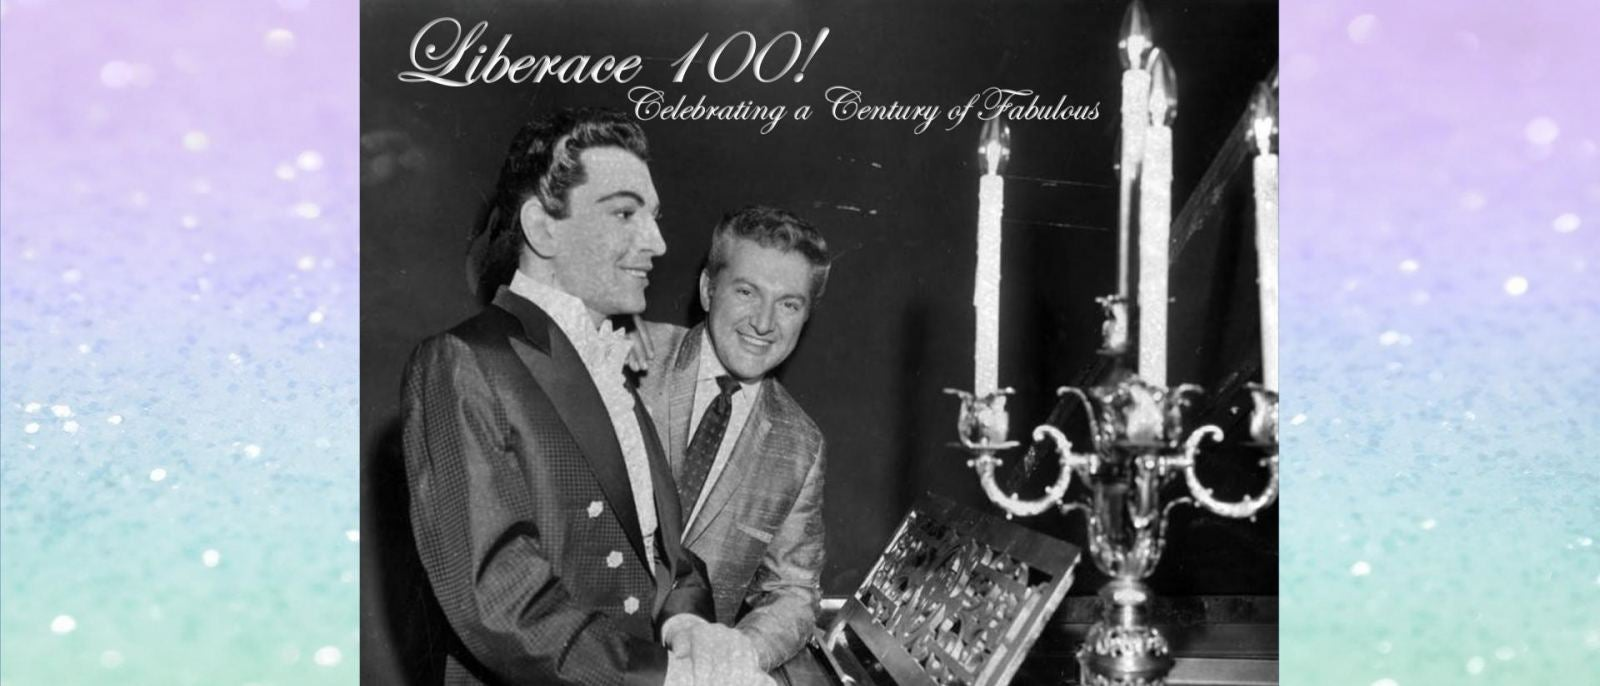 Liberace 100! at the Central Library